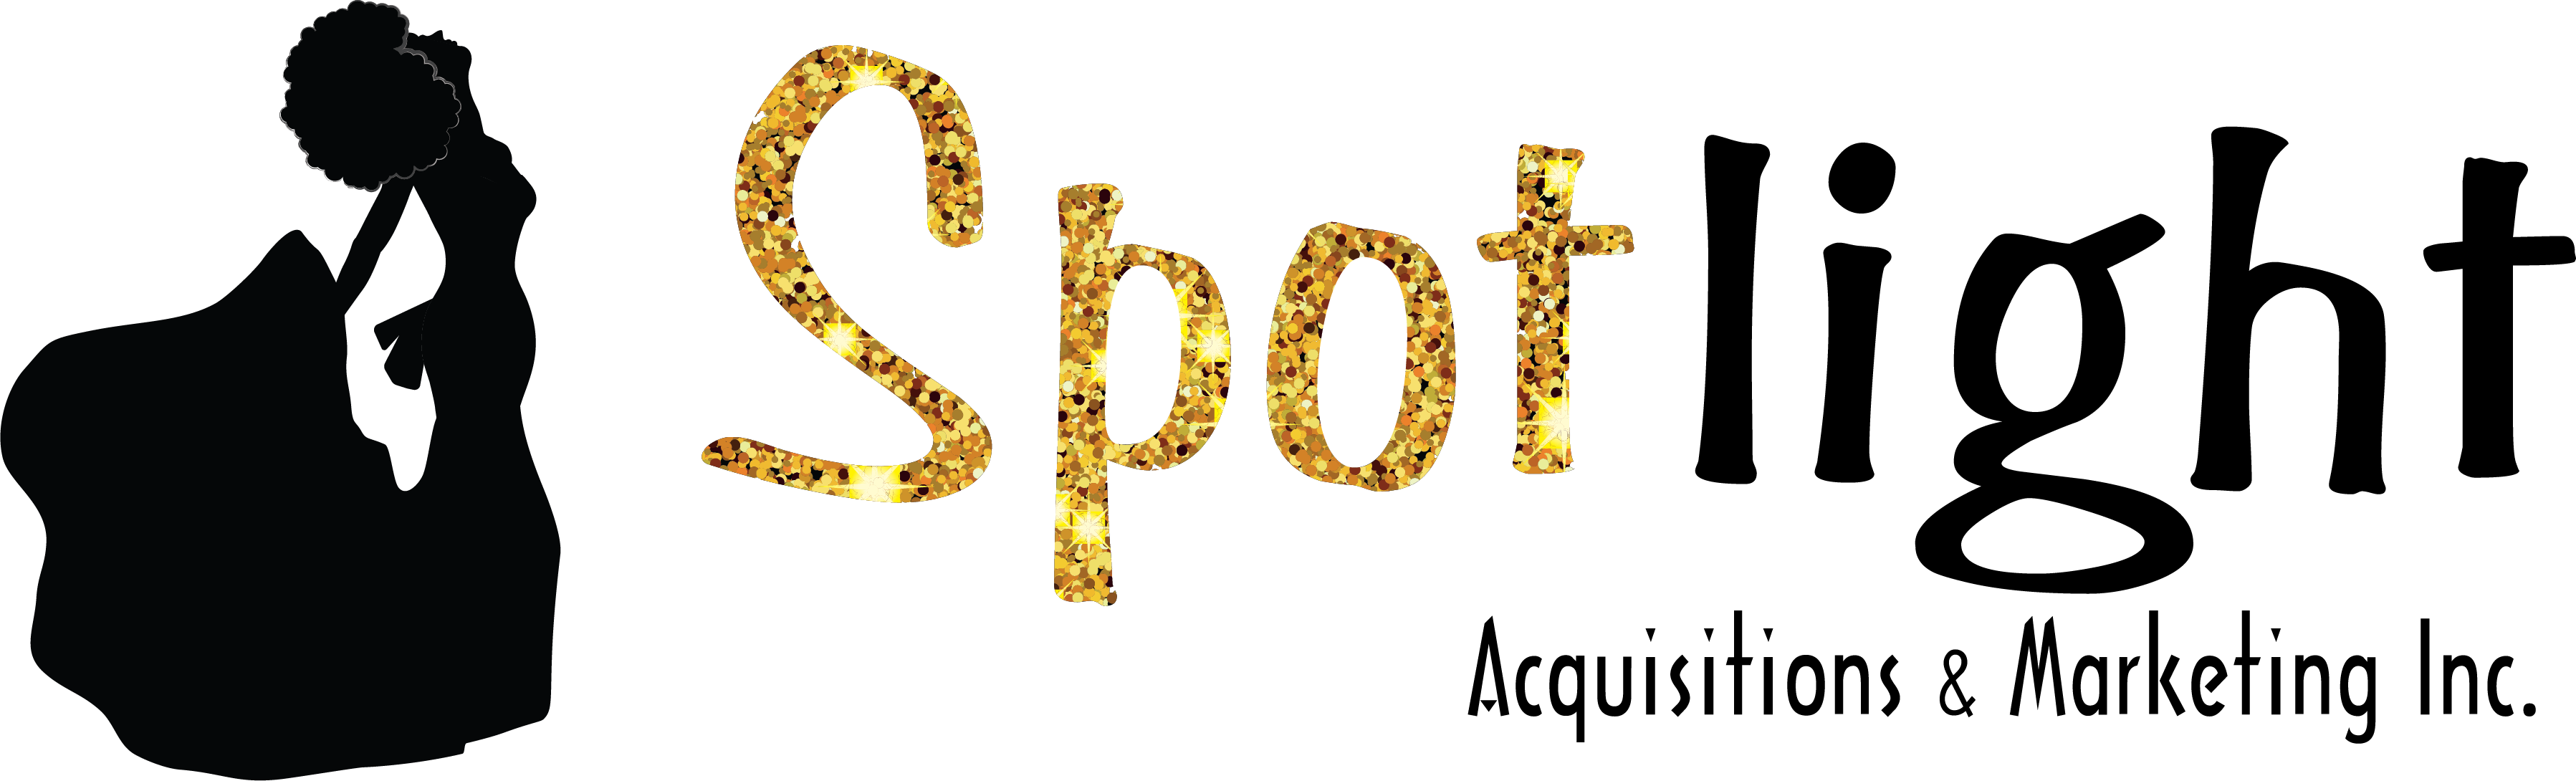 Spotlight Acquisitions & Marketing Inc.